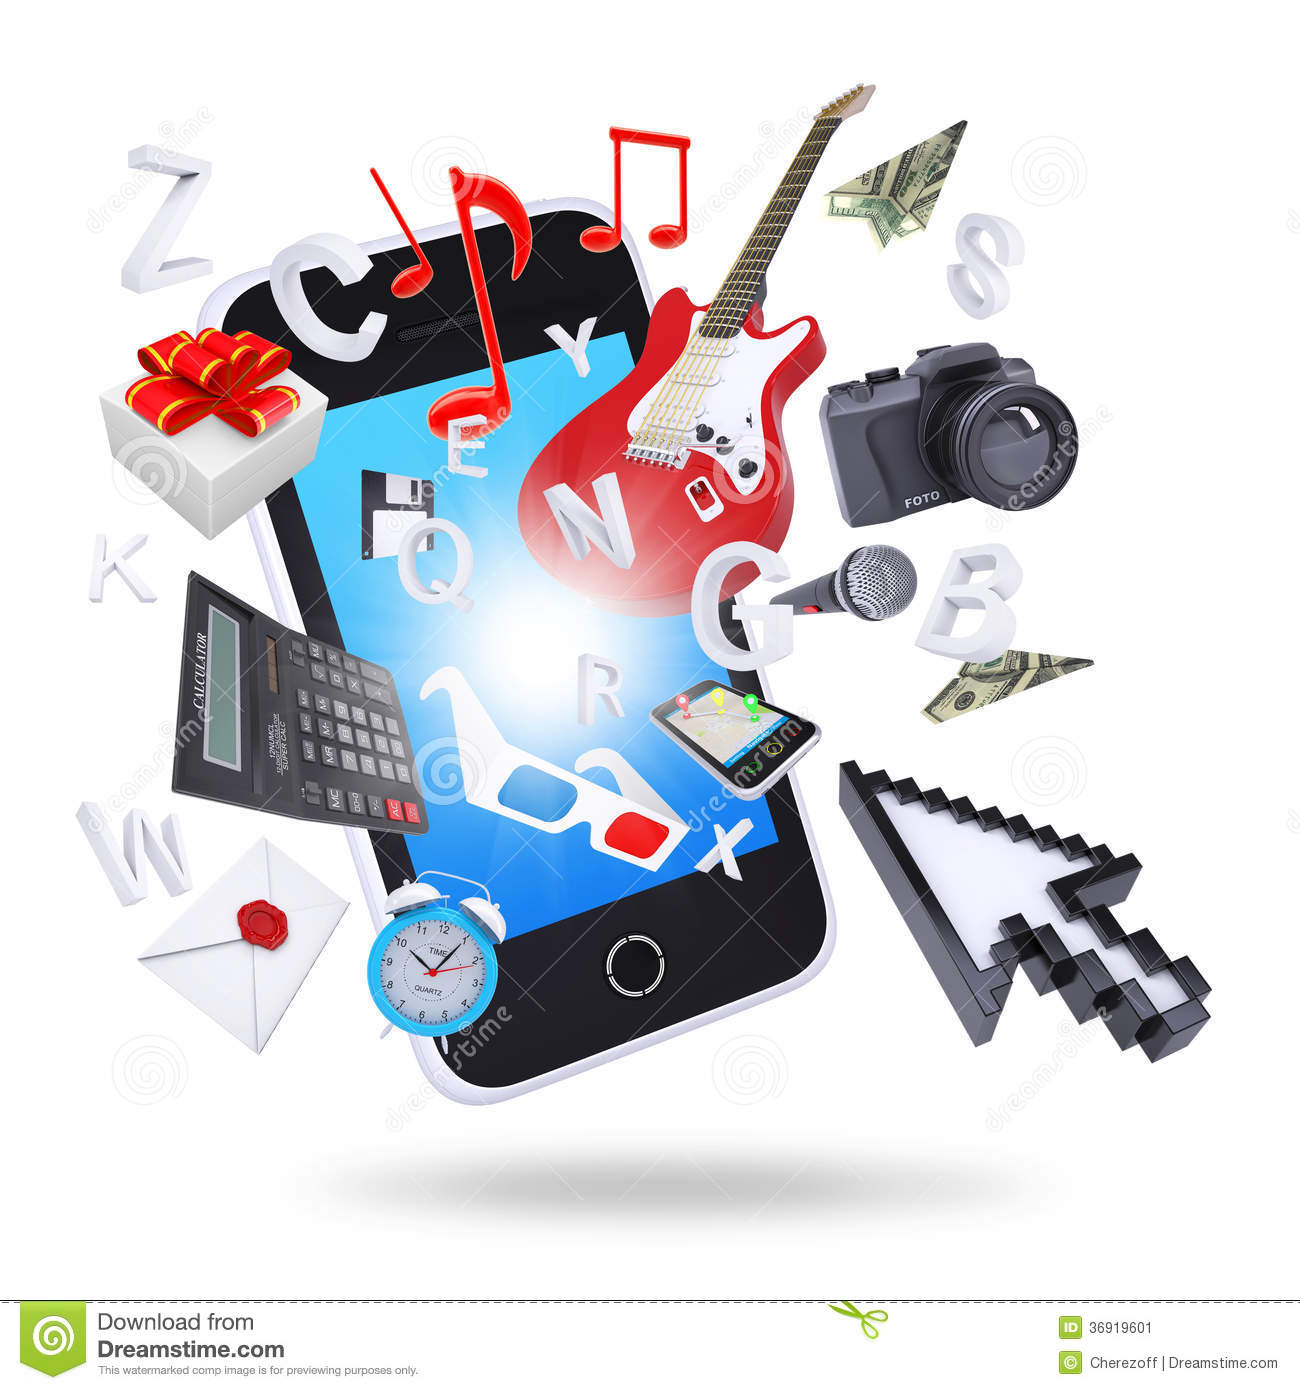 Smartphone And Multimedia Objects Stock Image - Image ...